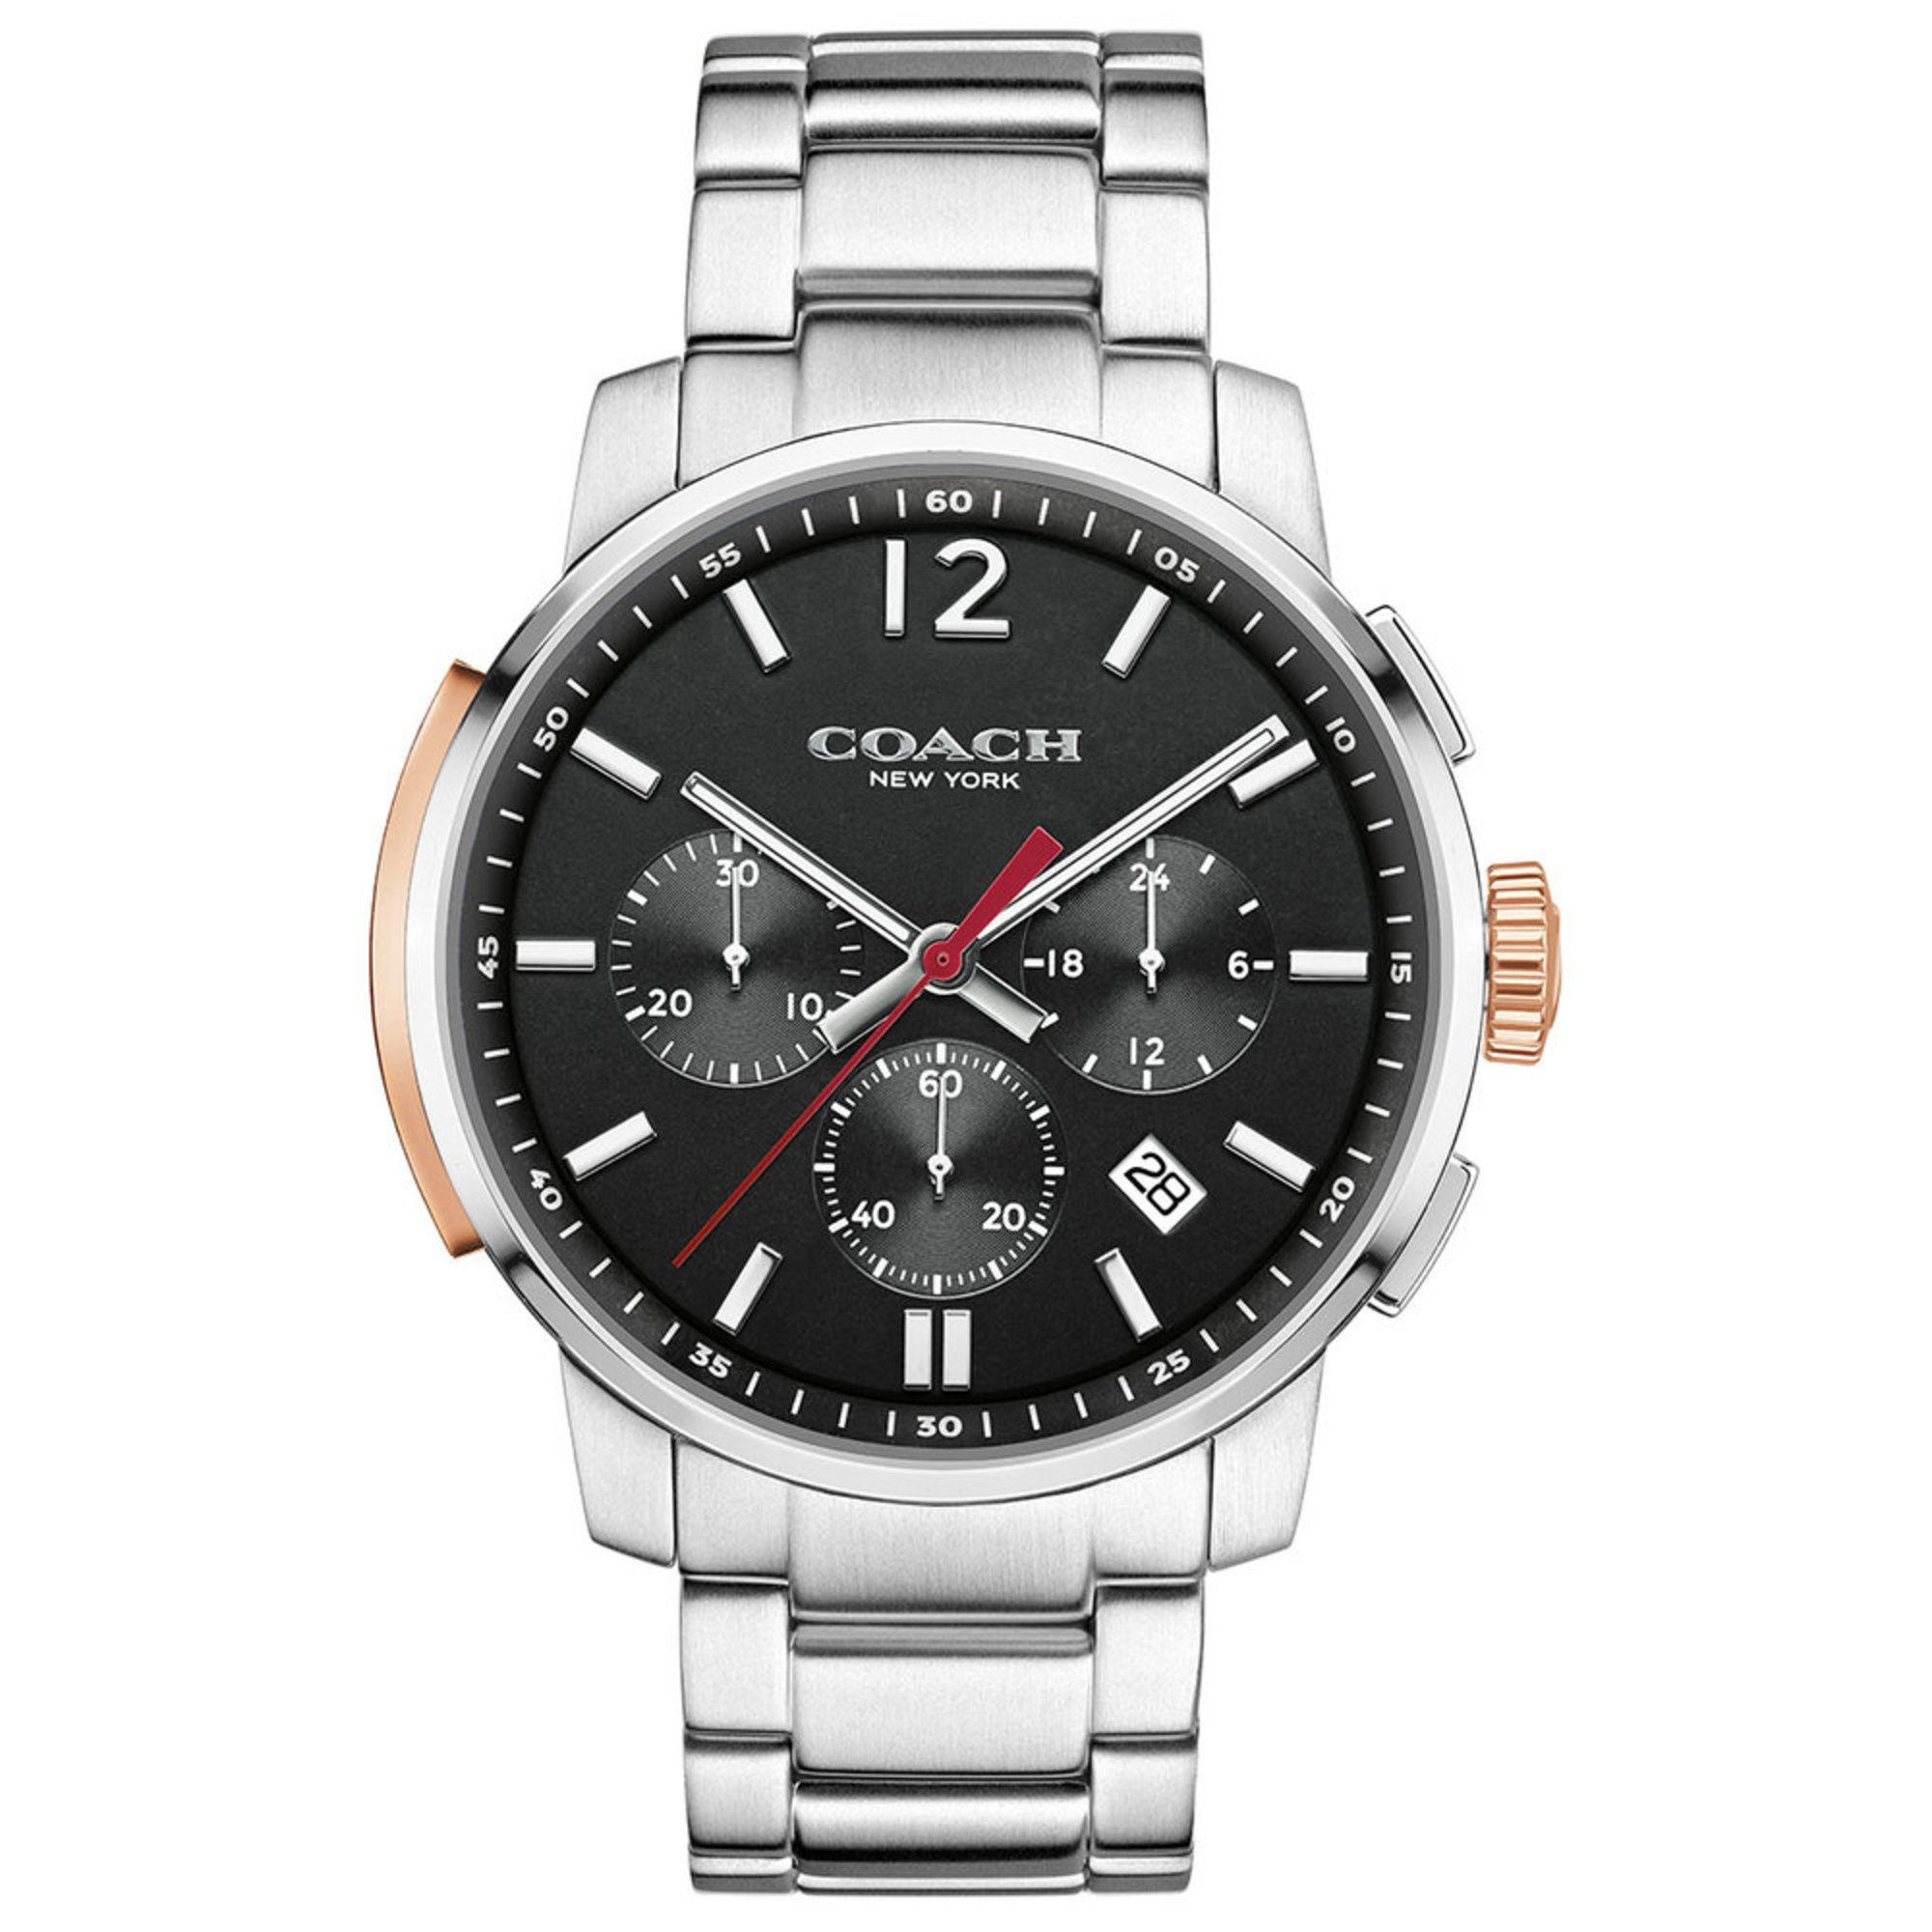 Coach men 39 s bleecker chronograph watch black stainless steel 42mm men 39 s watches handbags for Watches clearance